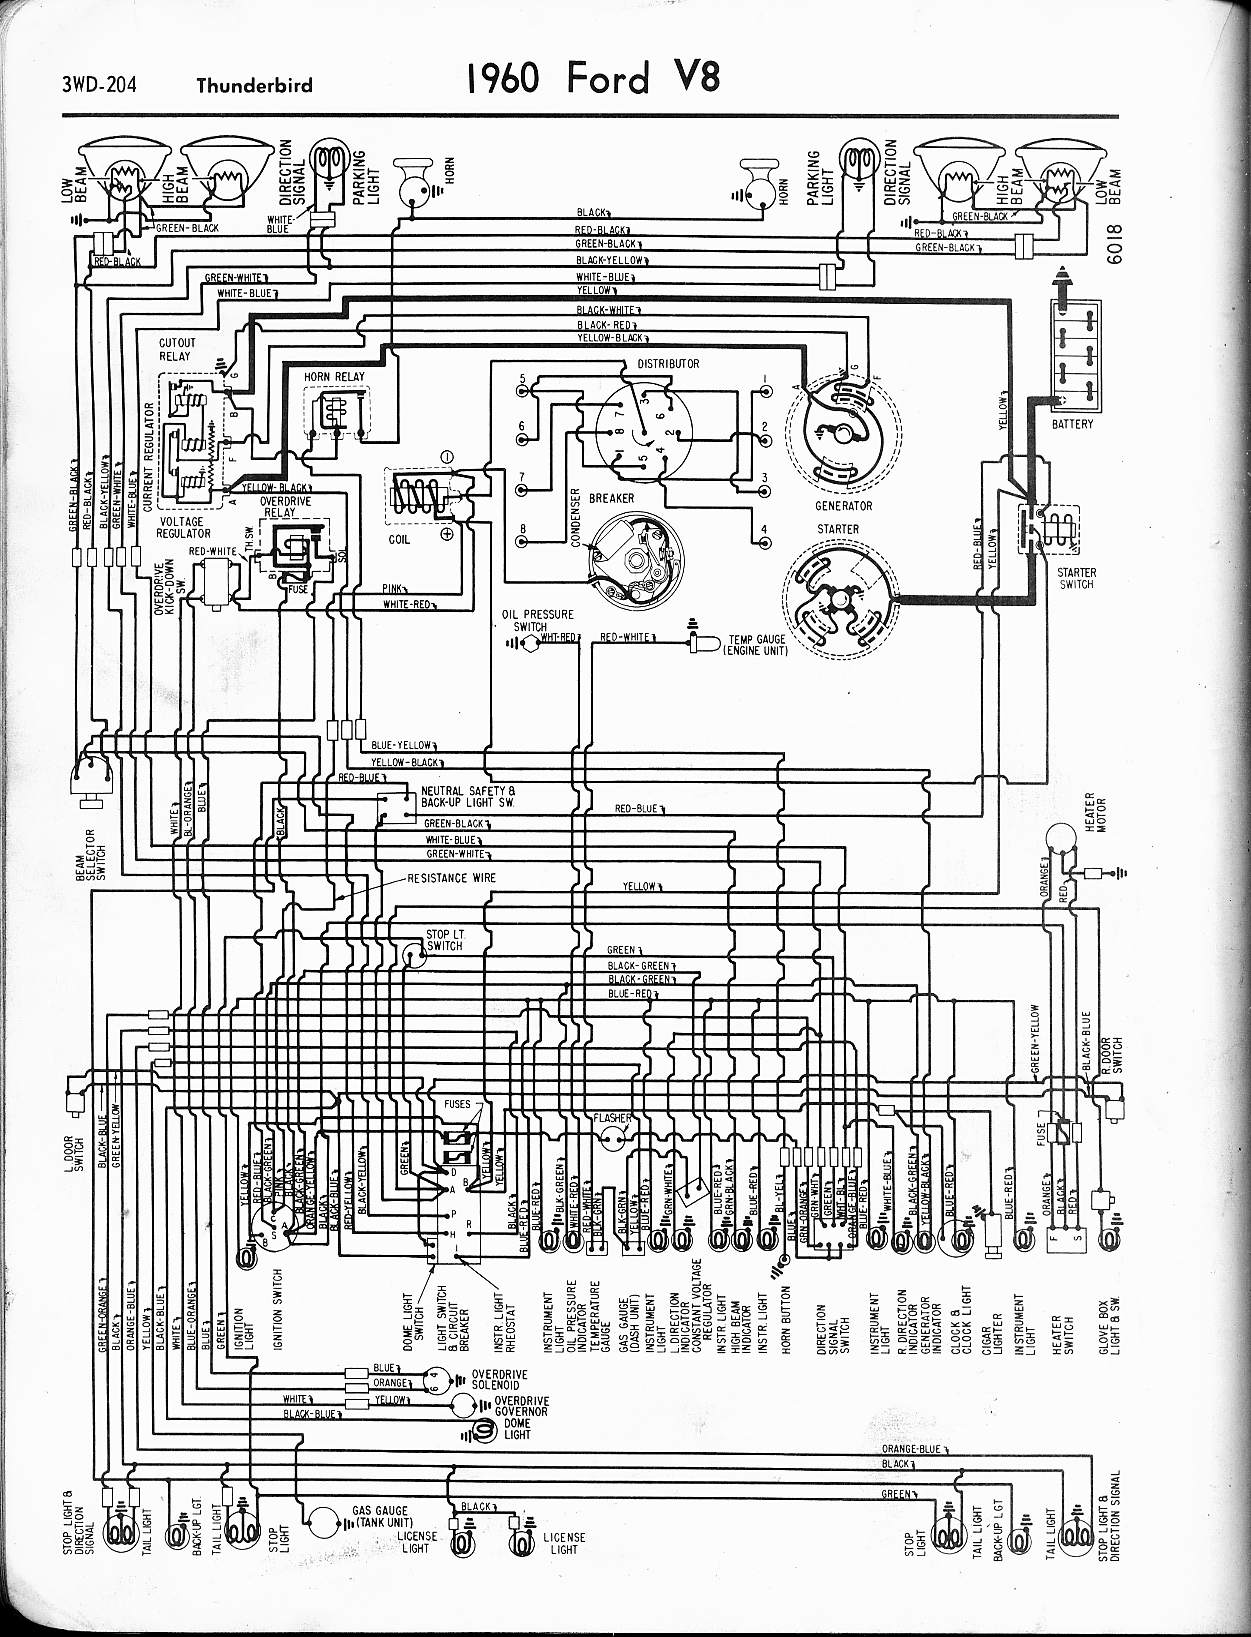 1968 Ford F 250 Starter Wiring Diagram Reveolution Of V8 Engine Galaxie Data Schema Rh Site De Joueurs Com 2001